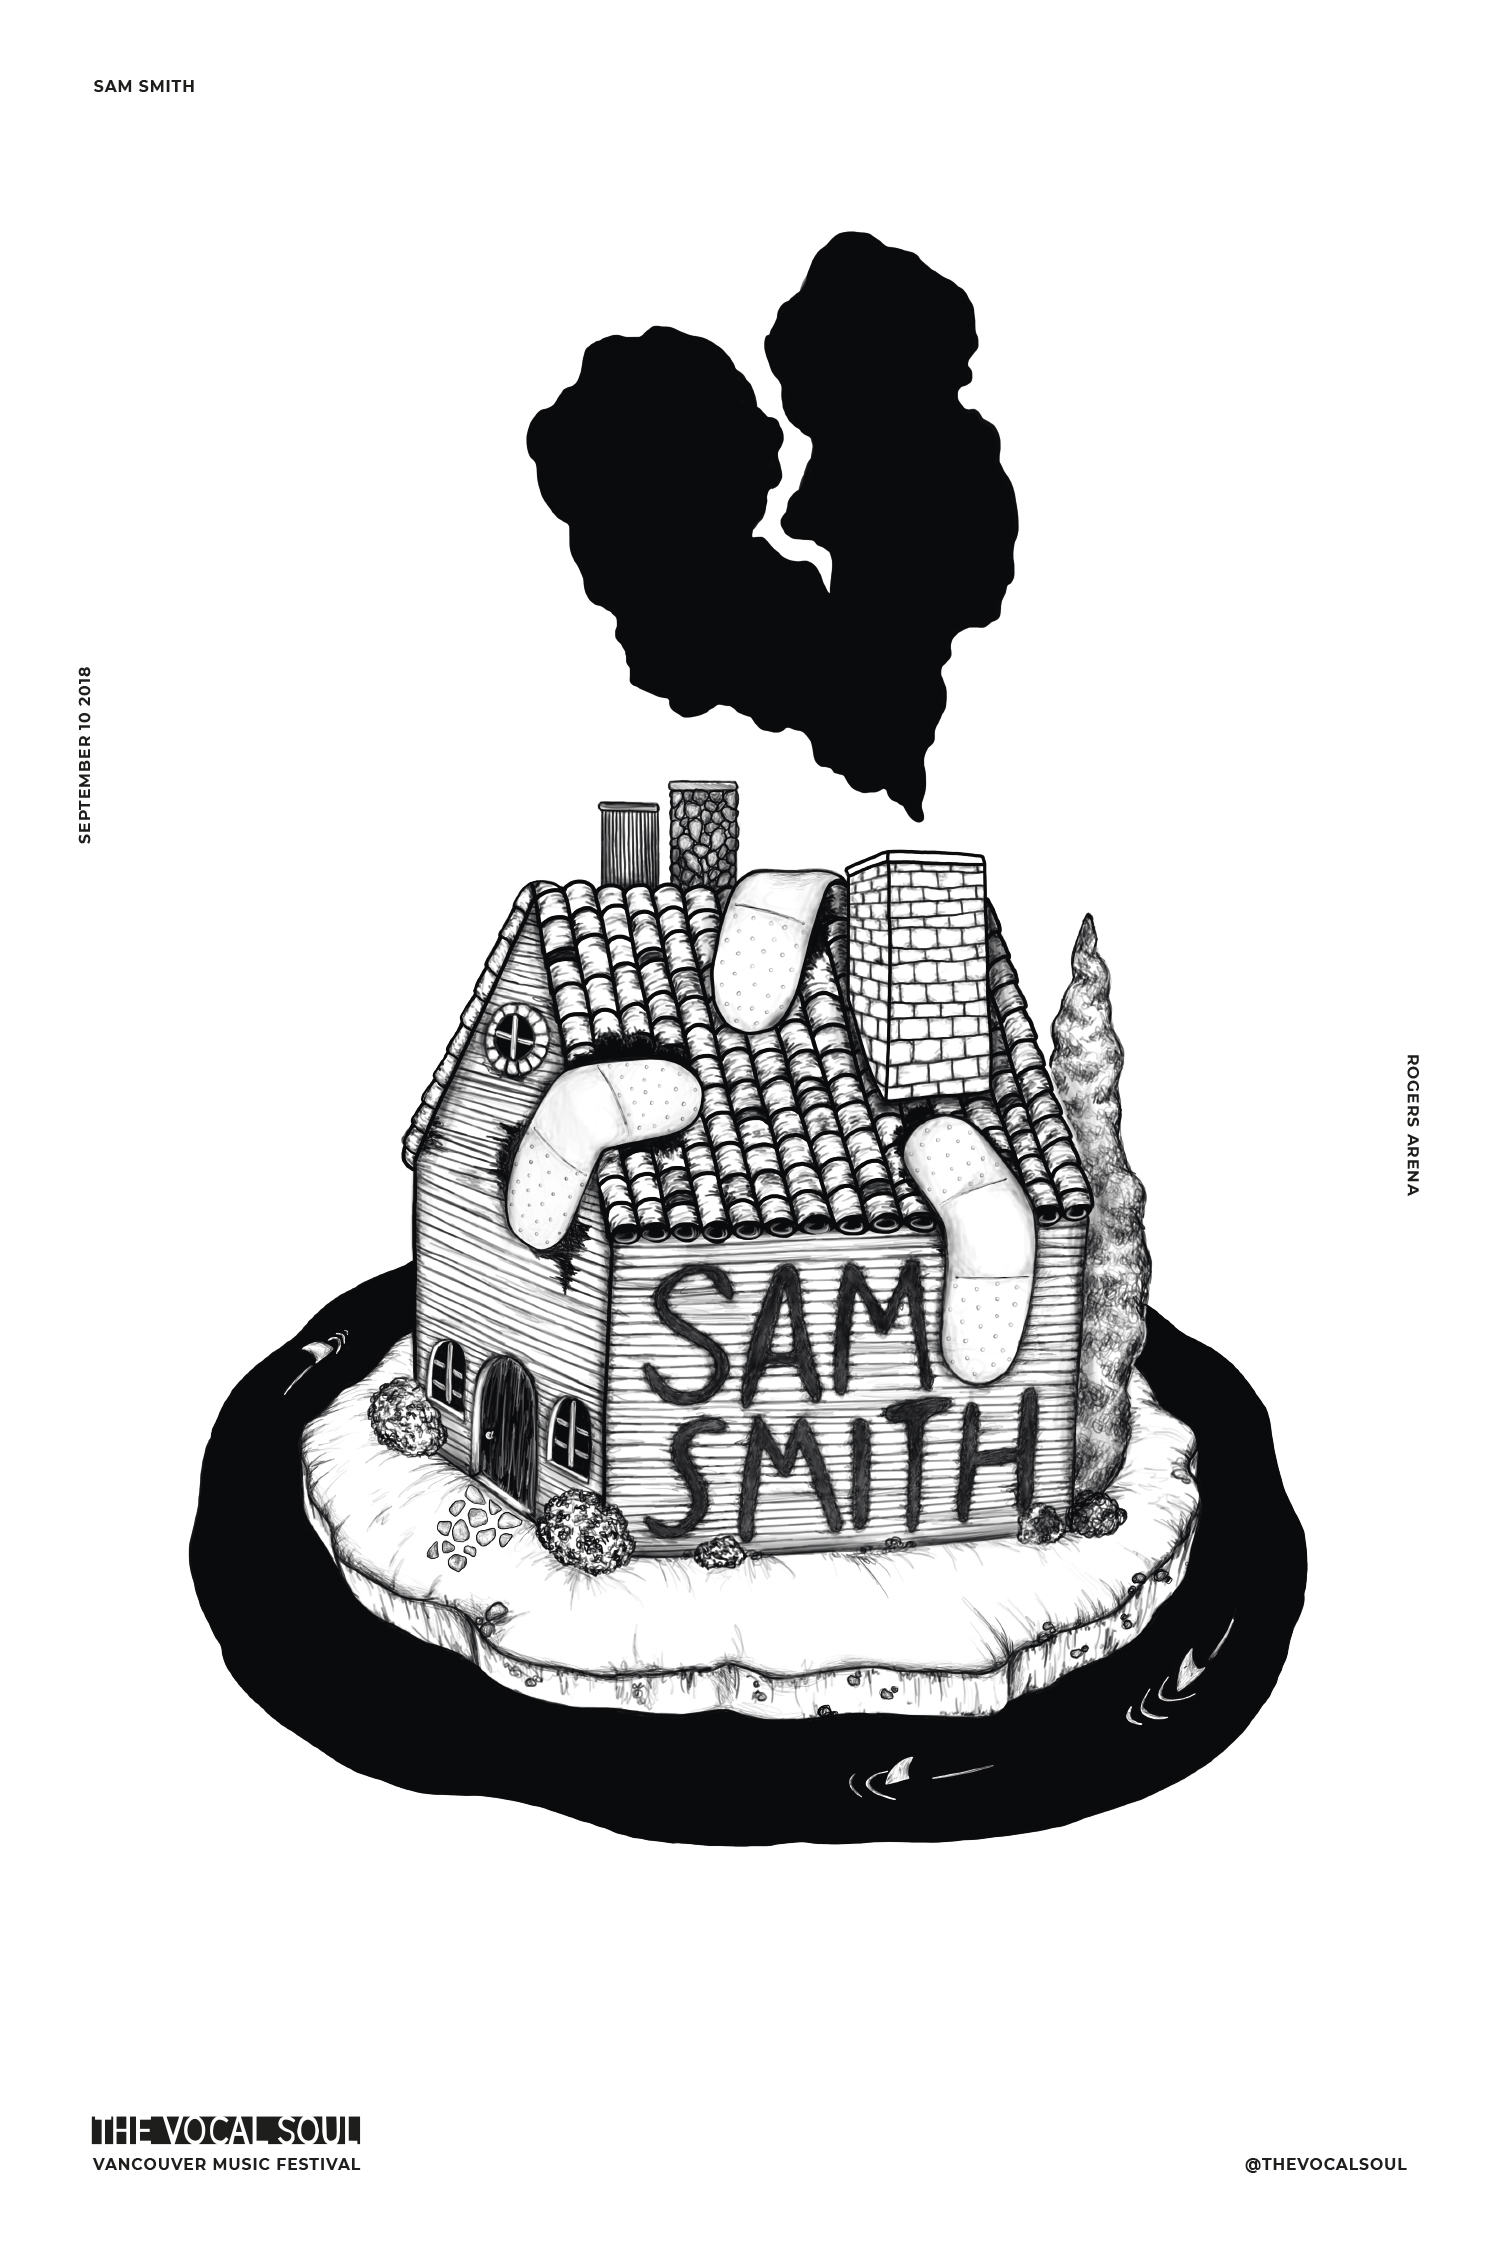 Sam Smith, The Vocal Soul, Vancouver Music Festival illustrated poster by Emily Rose